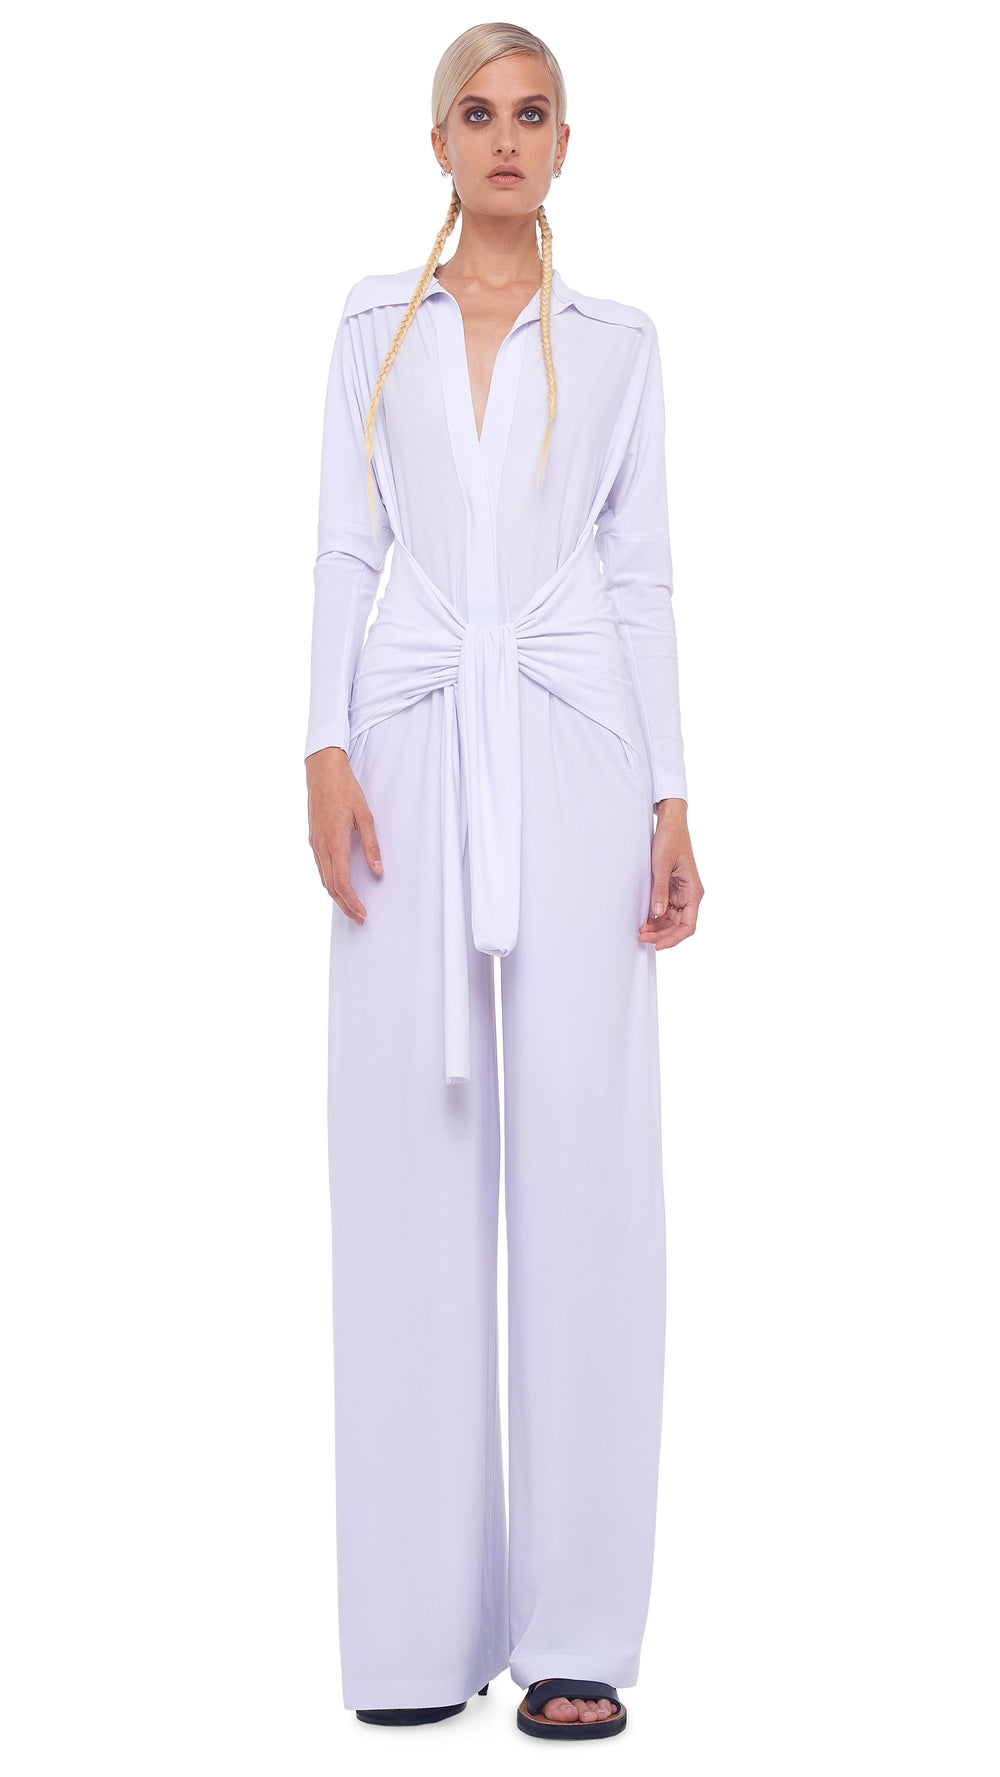 TY FRONT NK SHIRT WIDE LEG JUMPSUIT - 1